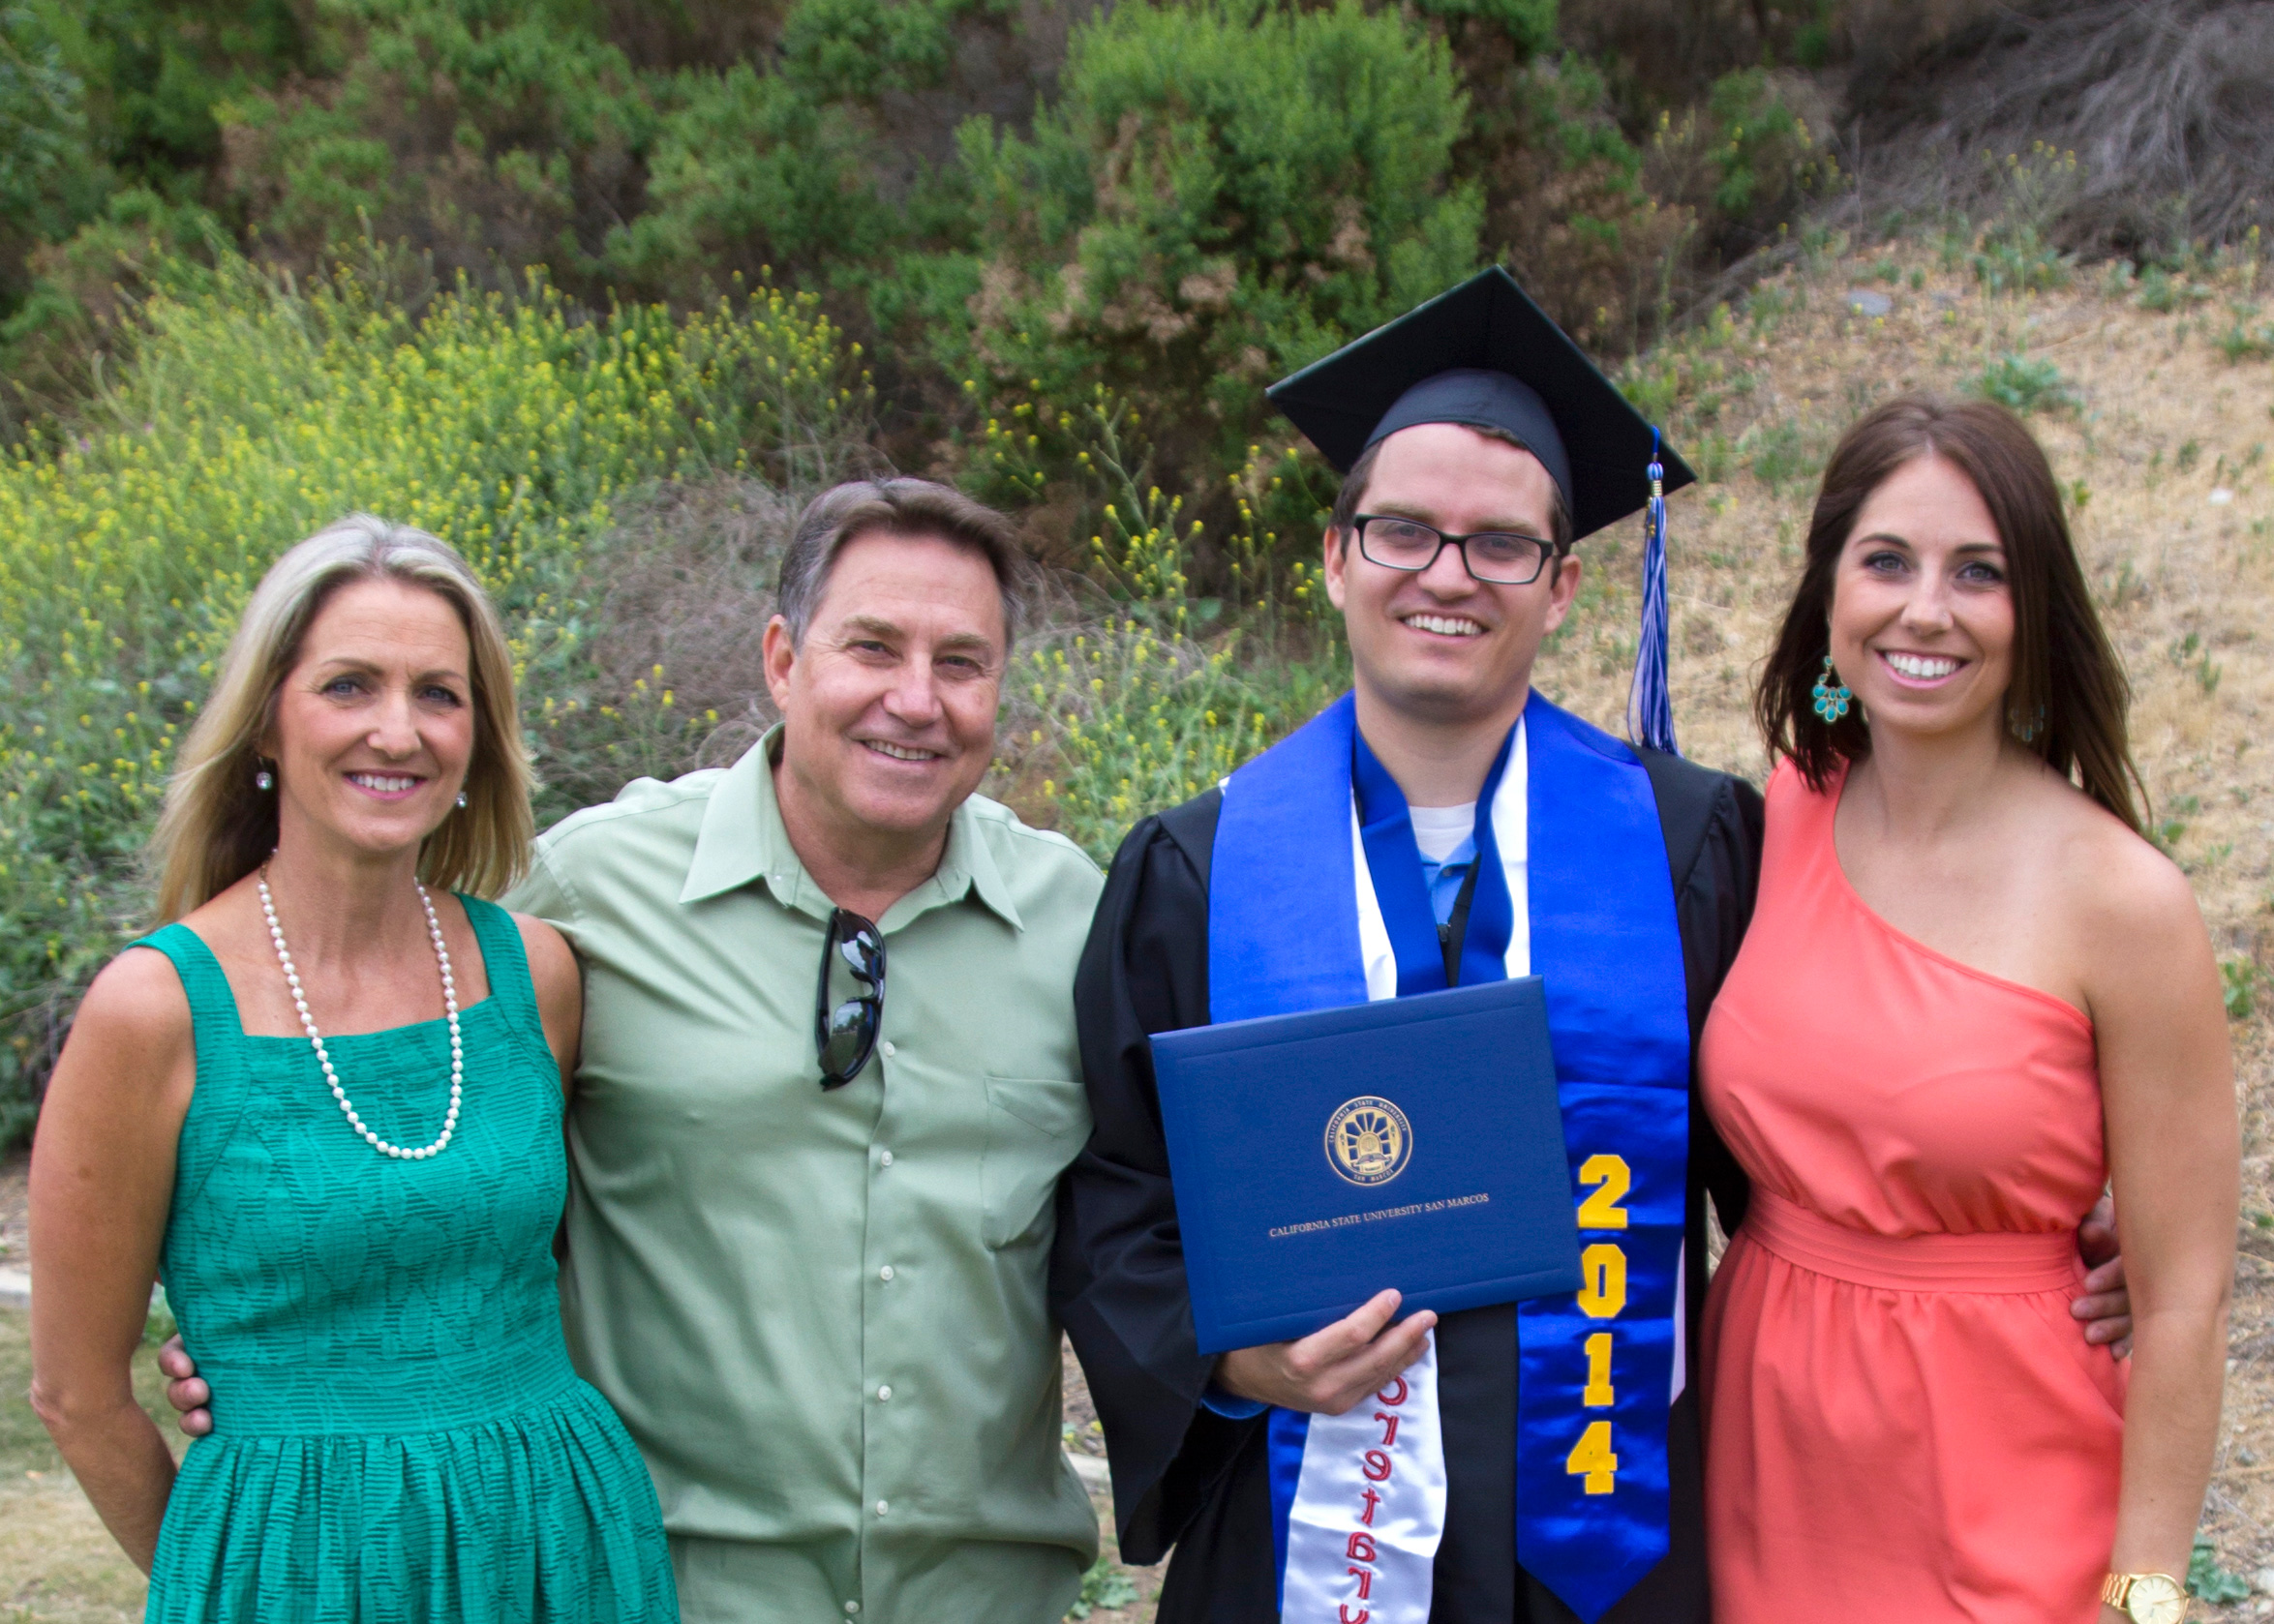 CSUSM Alumni Family, The Murphy's, all graduated from Cal State San Marcos